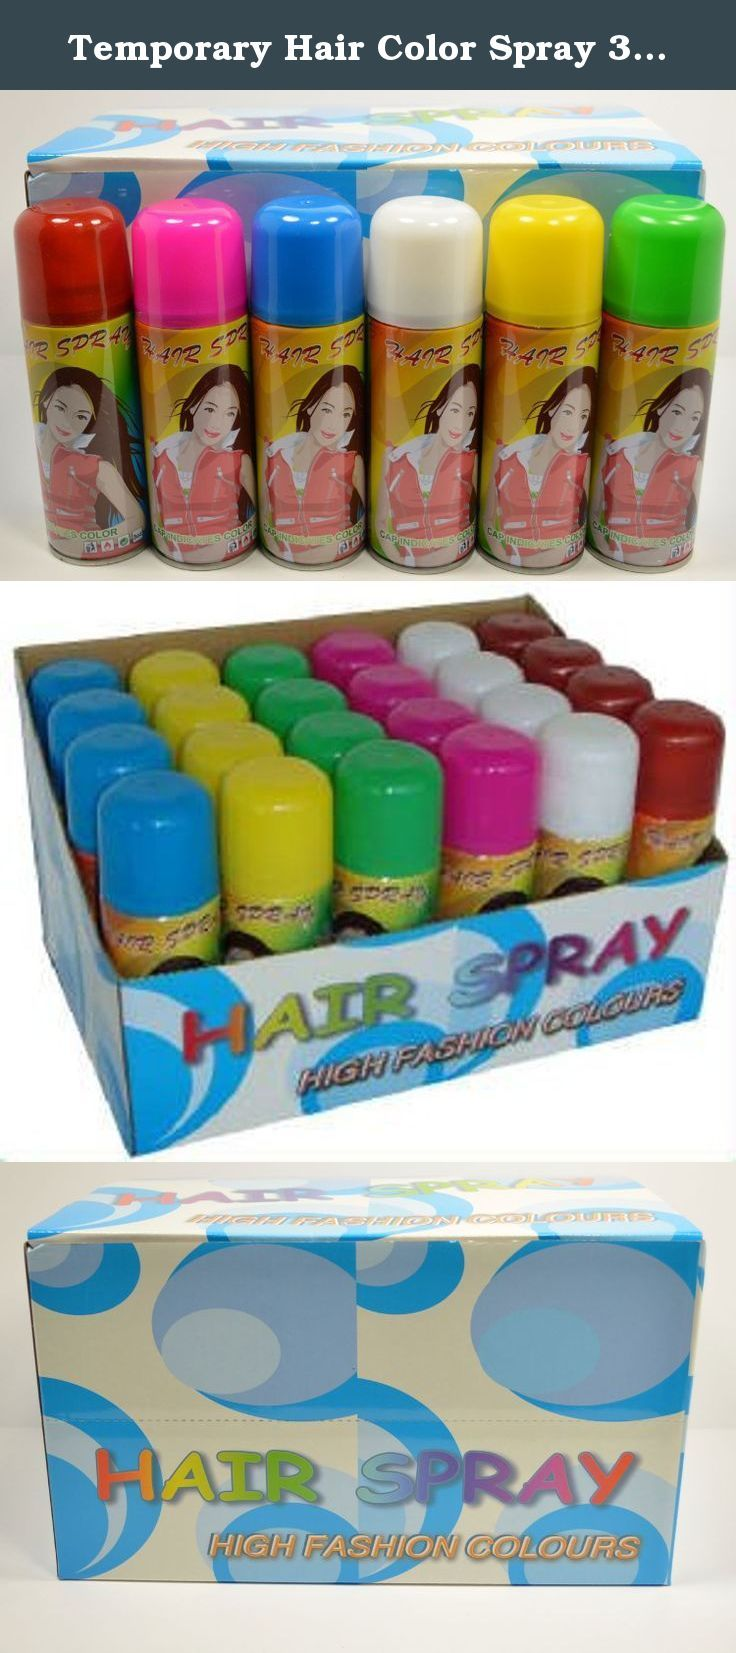 Temporary Hair Color Spray 3 Oz Case 24 Cans Colored Hair